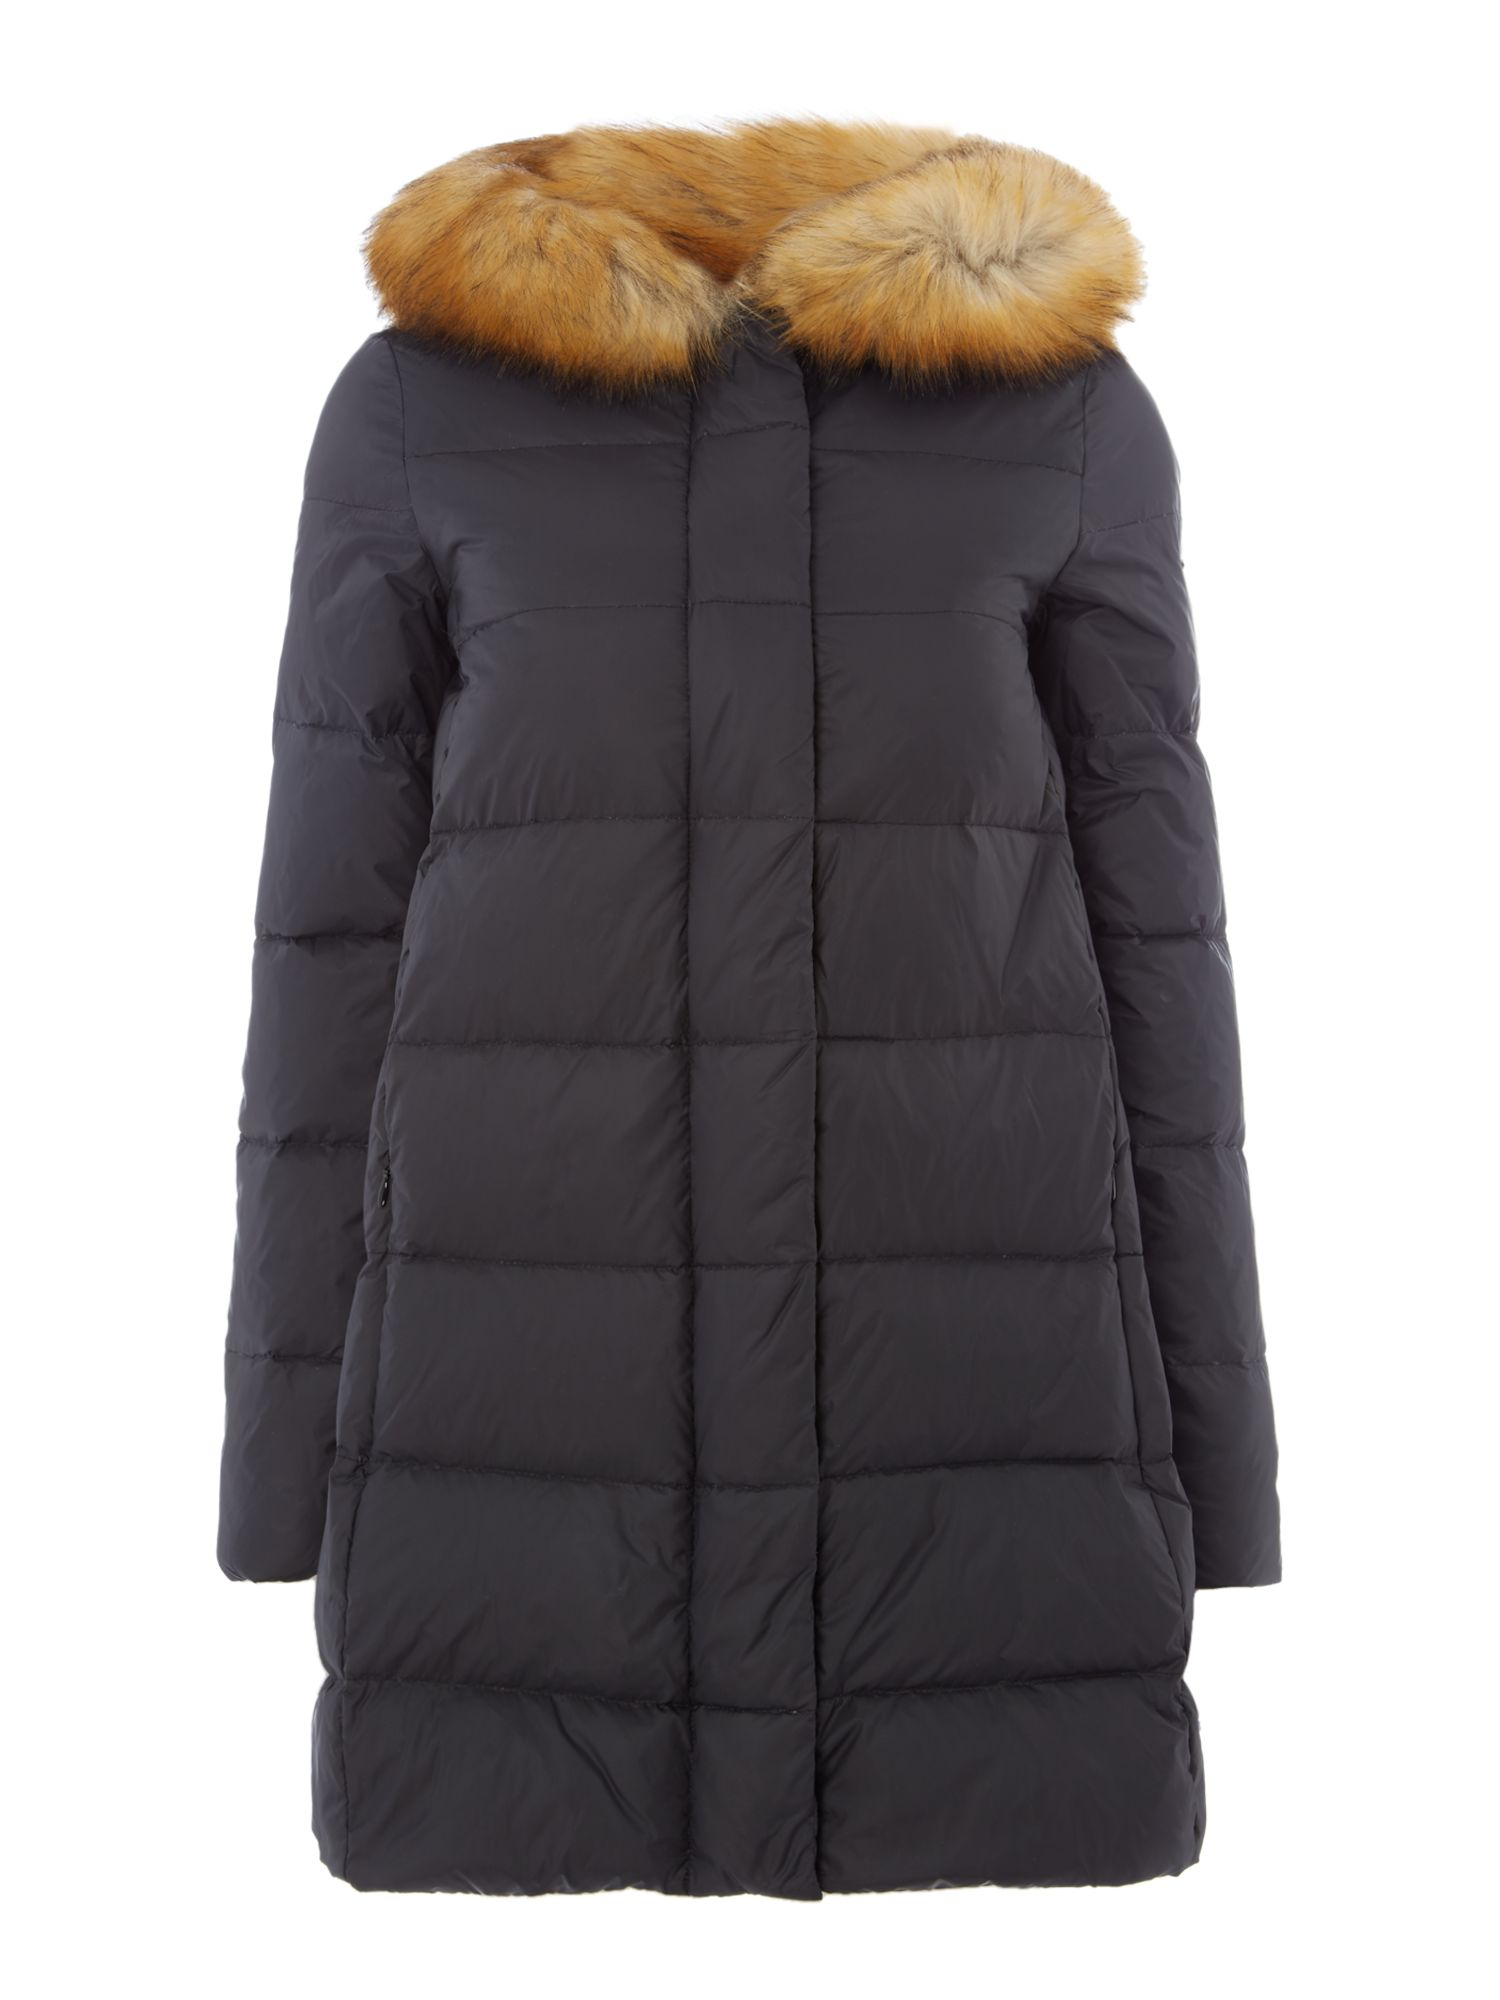 Armani Jeans Faux fur lined hooded padded jacket in nero, Black